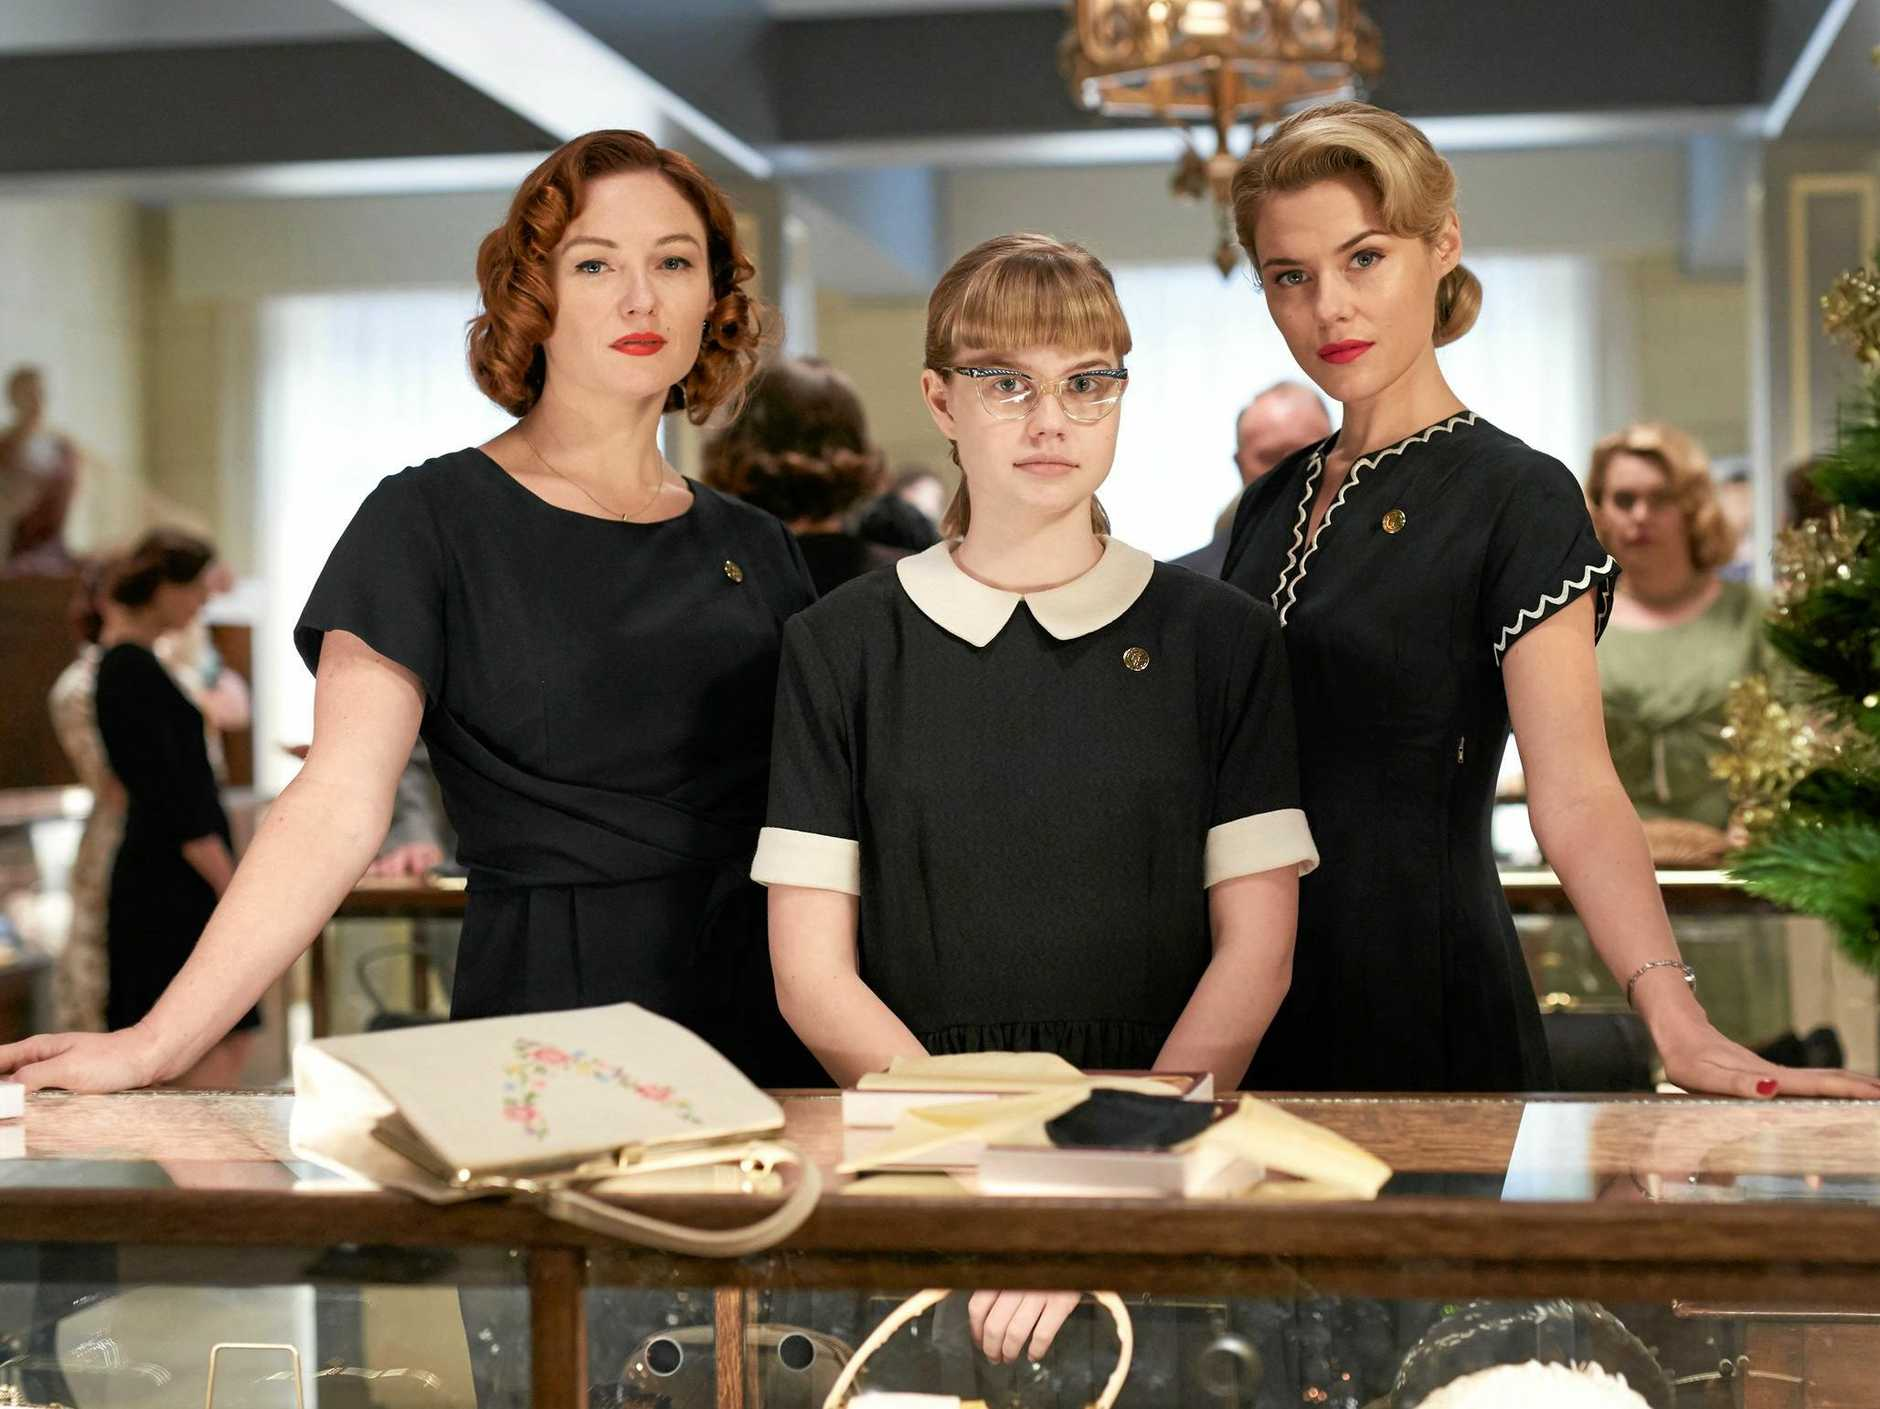 Alison McGirr, Angourie Rice and Rachael Taylor in a scene from Ladies in Black.